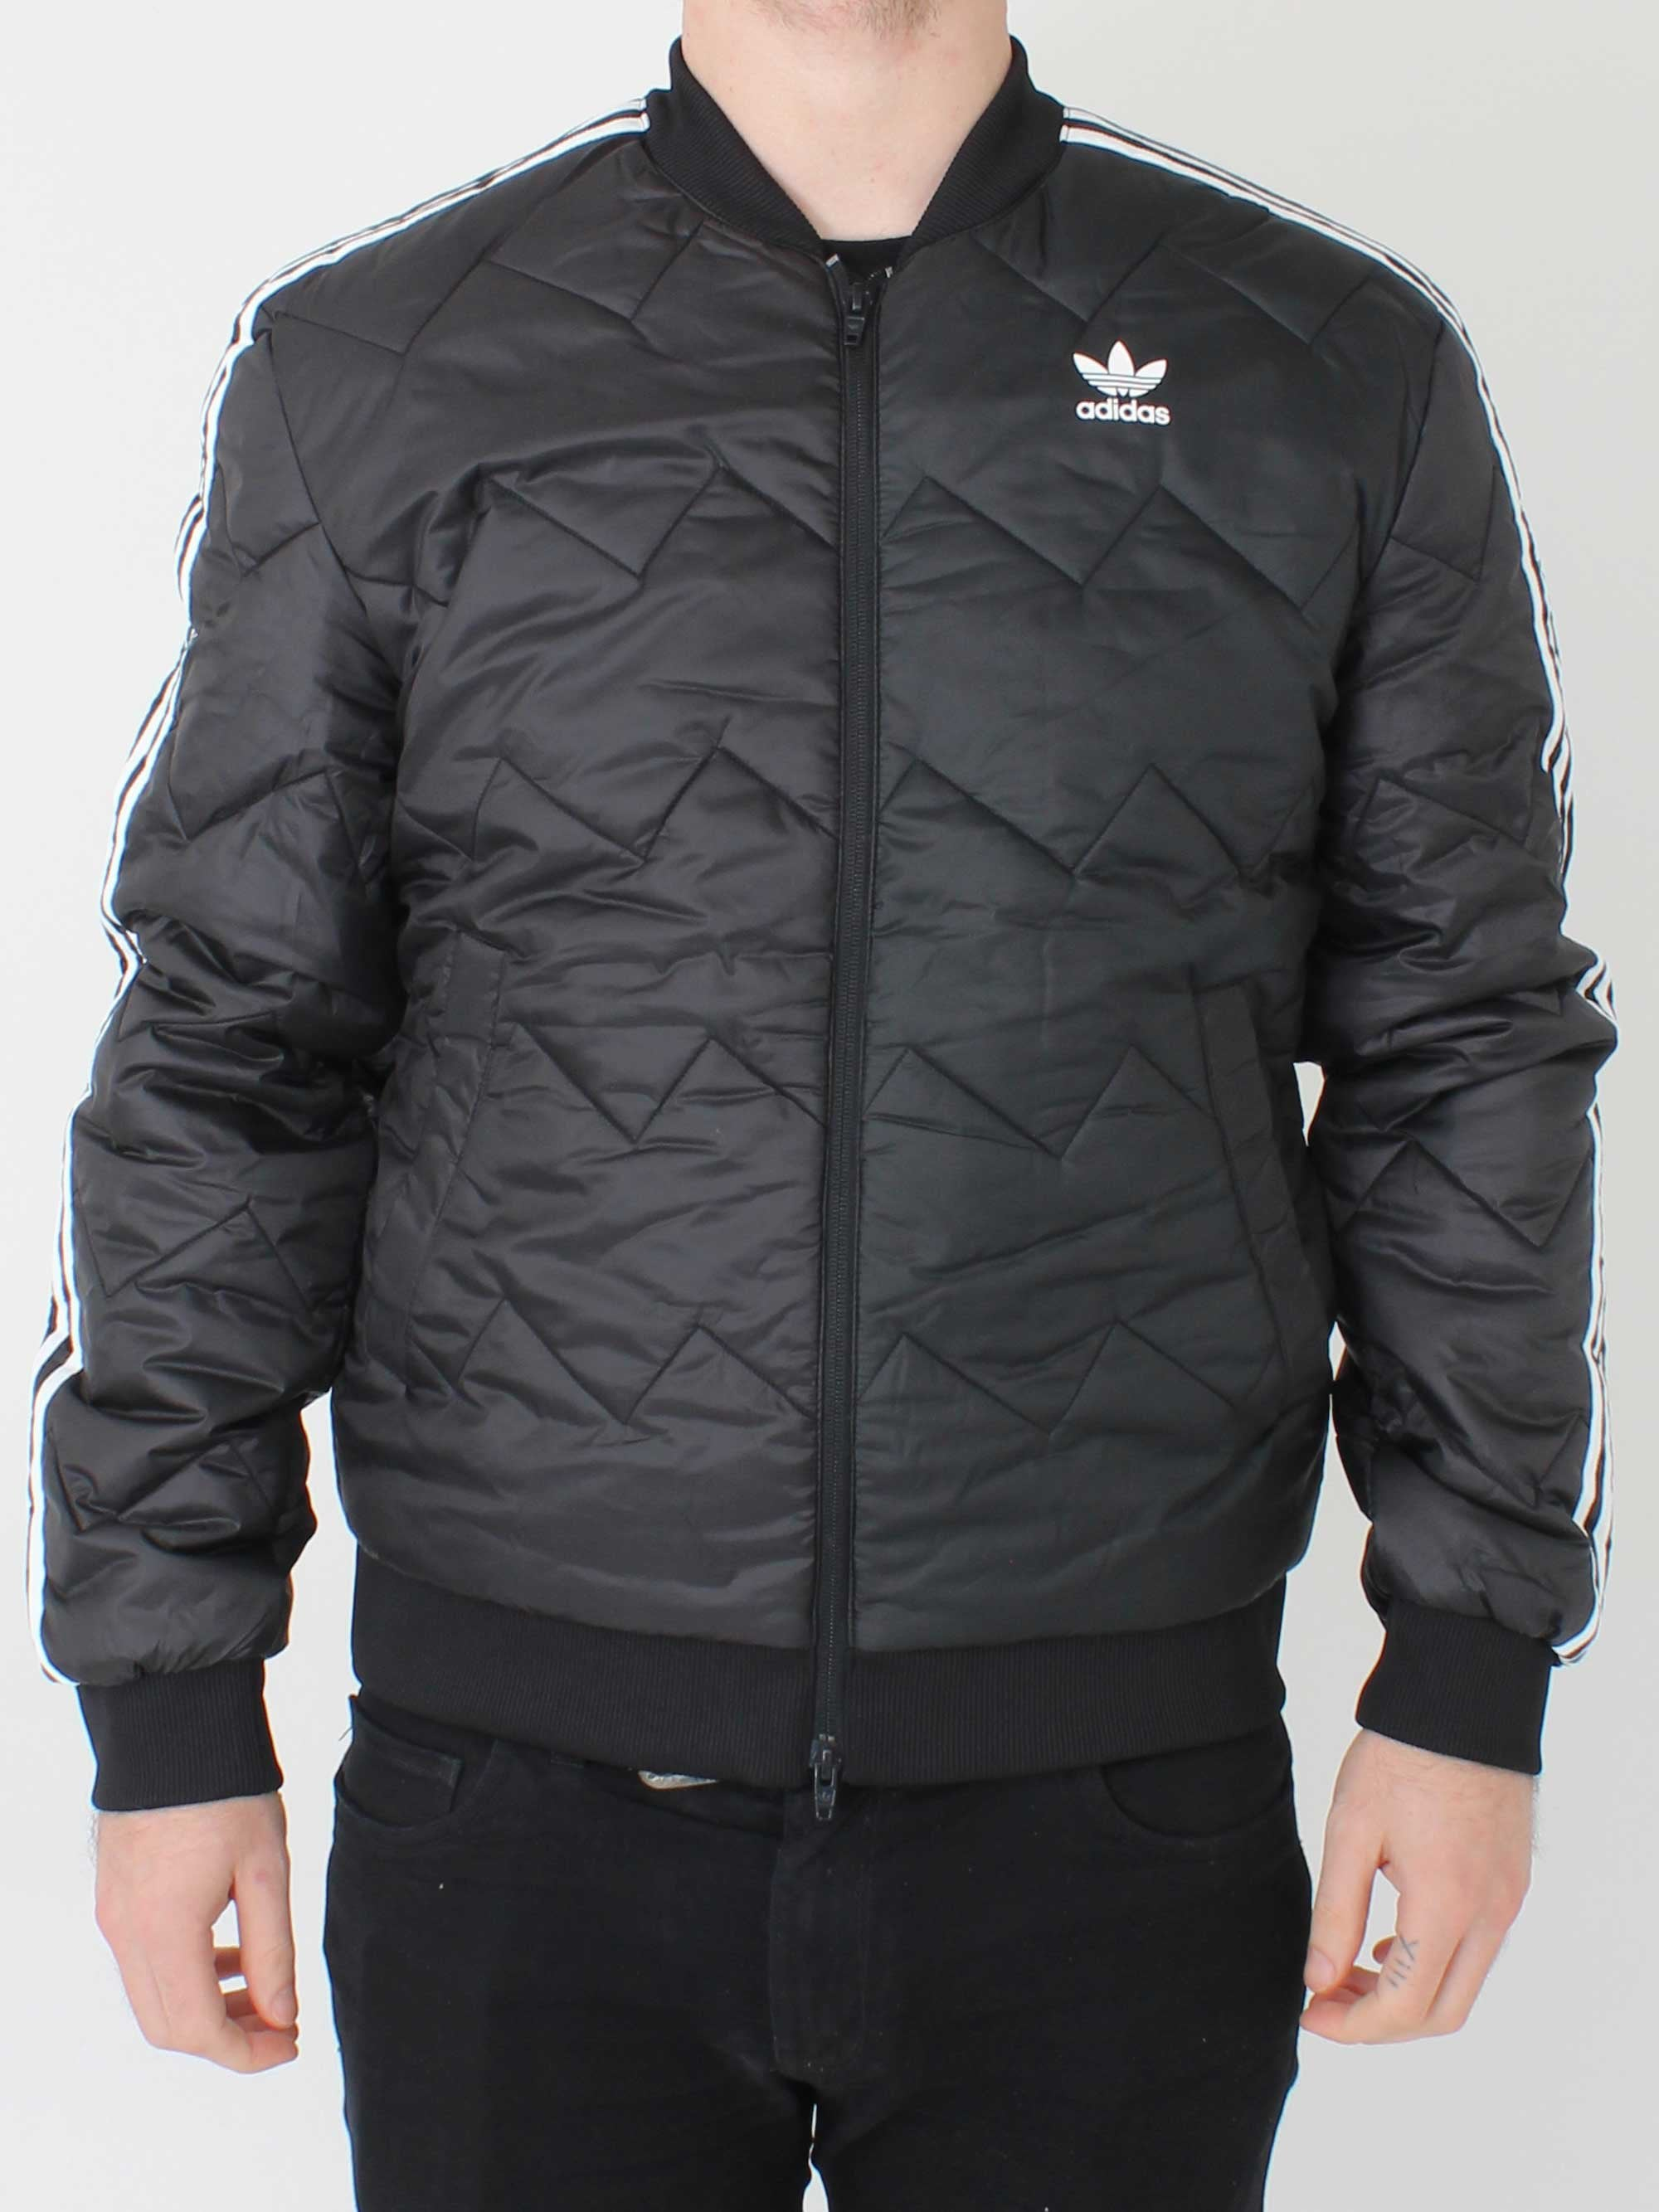 Lágrimas Persona australiana combustible  adidas Originals SST Quilted Jacket in Black | Northern Threads